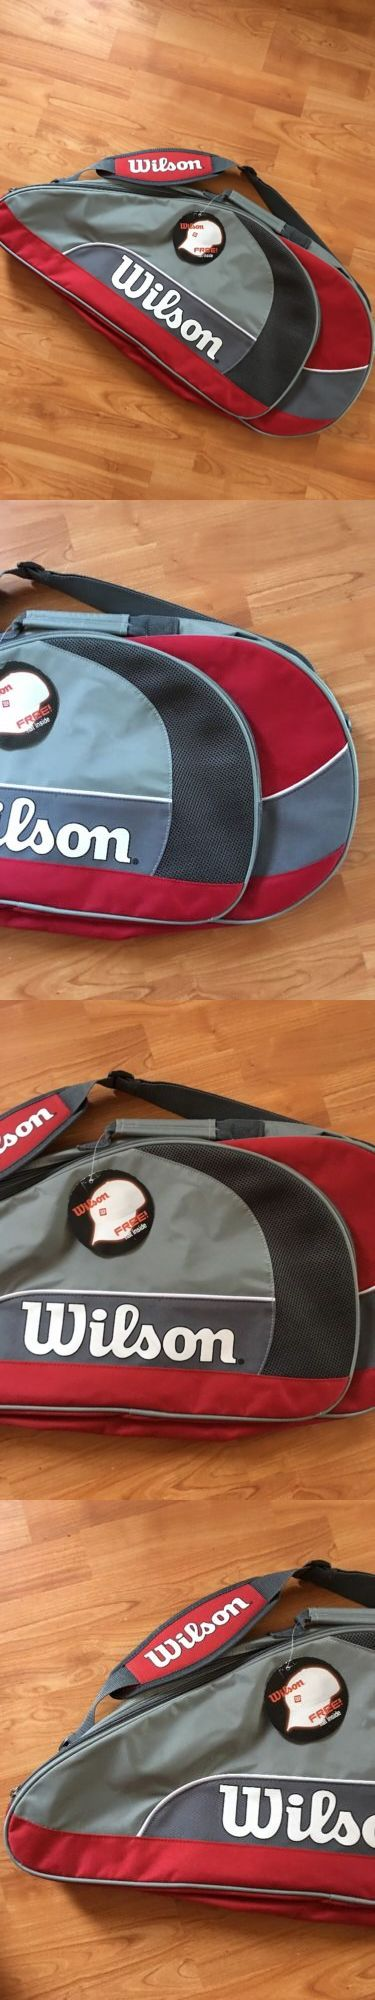 Bags 20869: Brand New Wilson Match Triple Tennis Racquet Bag **Holds 3 Racquets -> BUY IT NOW ONLY: $48.26 on eBay!